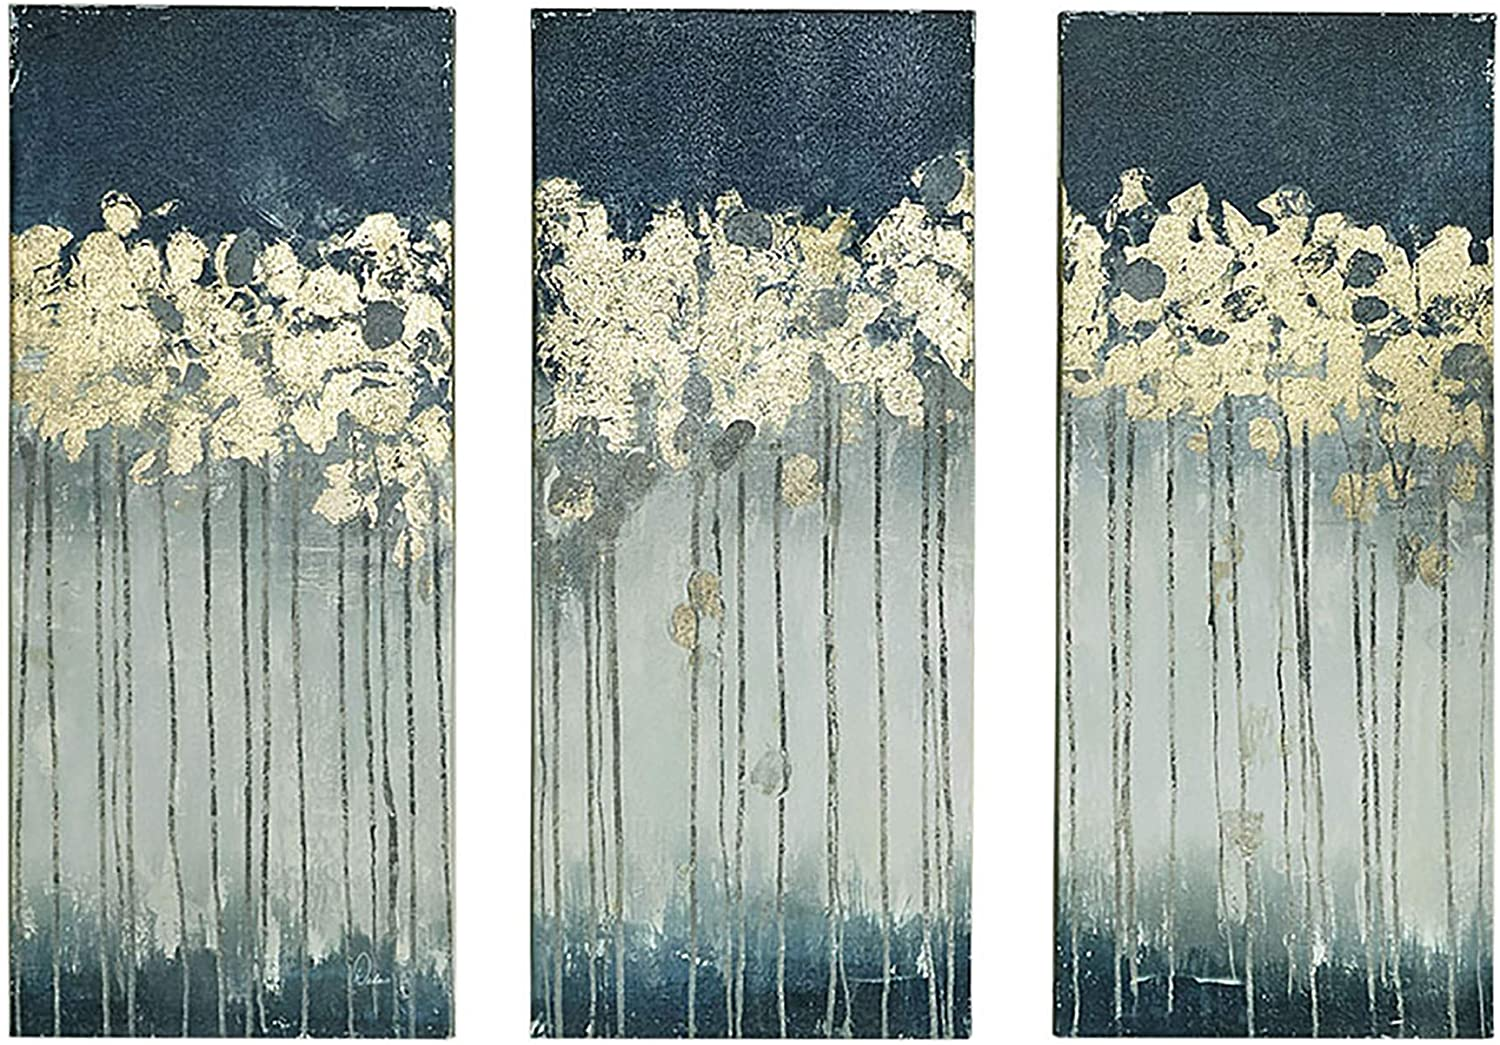 B018593CLQ Madison Park Midnight Forest Wall Art Hand Embellished Abstract Stretched 3 Piece Set Canvas Painting Living Room Décor, Gold 81AGCUWGoNL